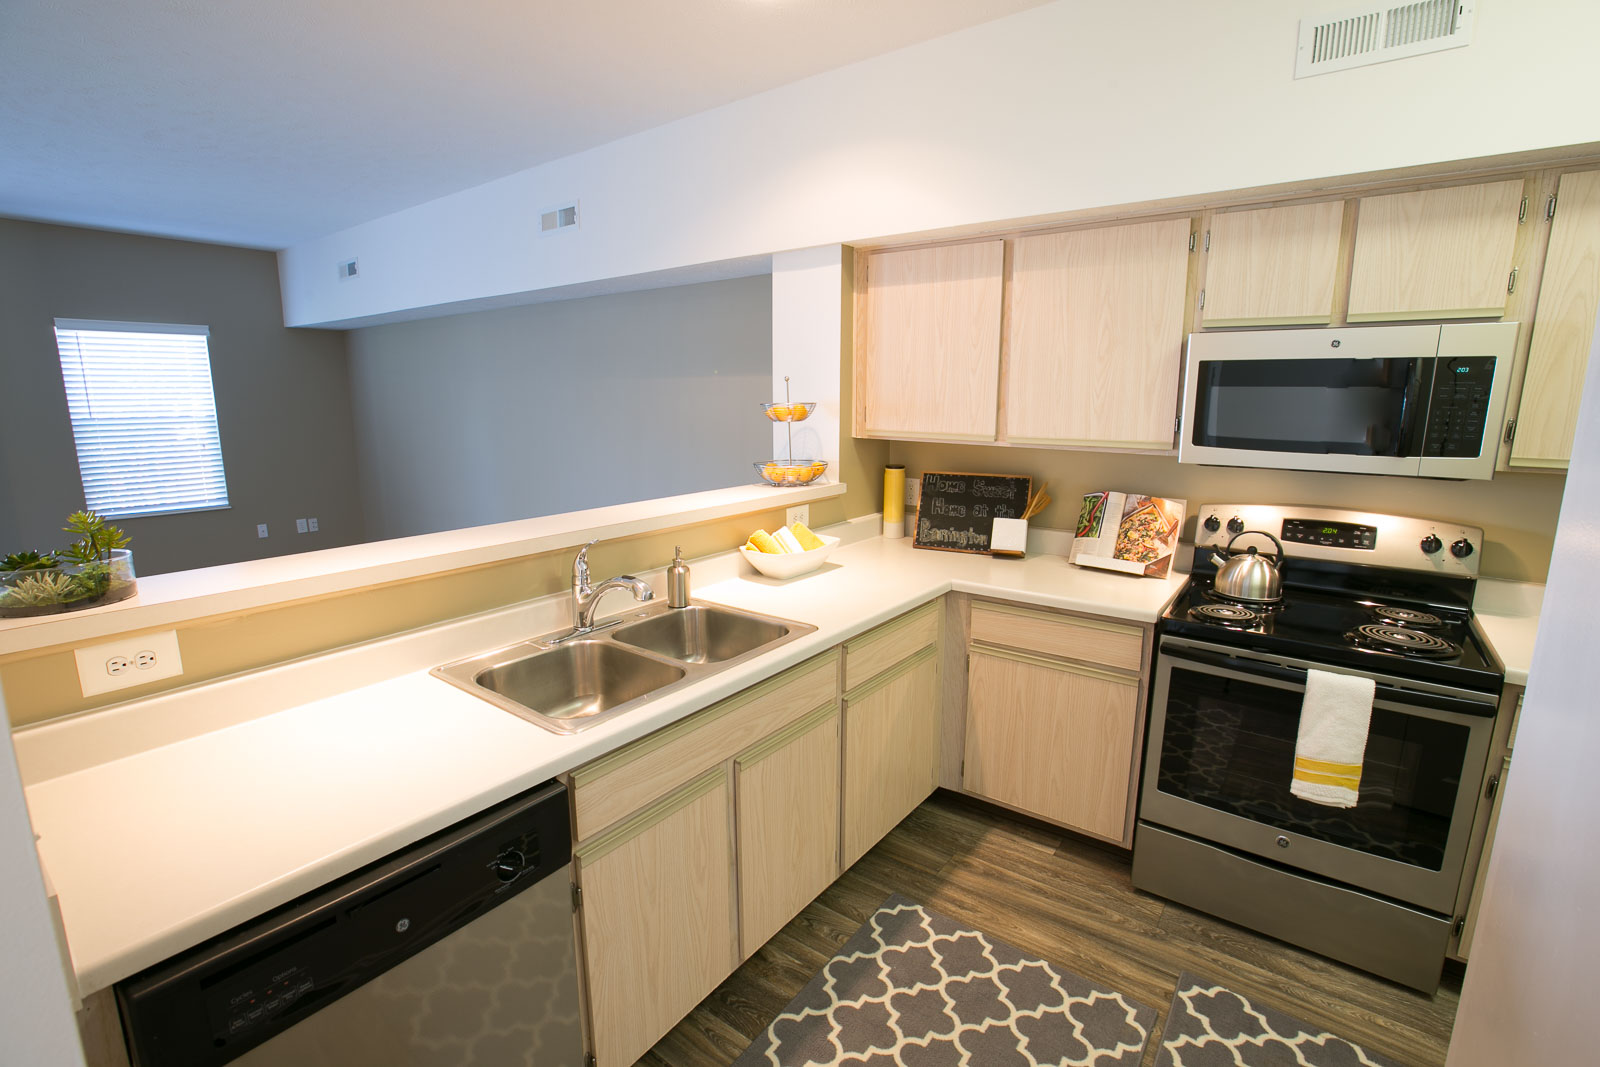 The Residence at Barrington Apartments image 3